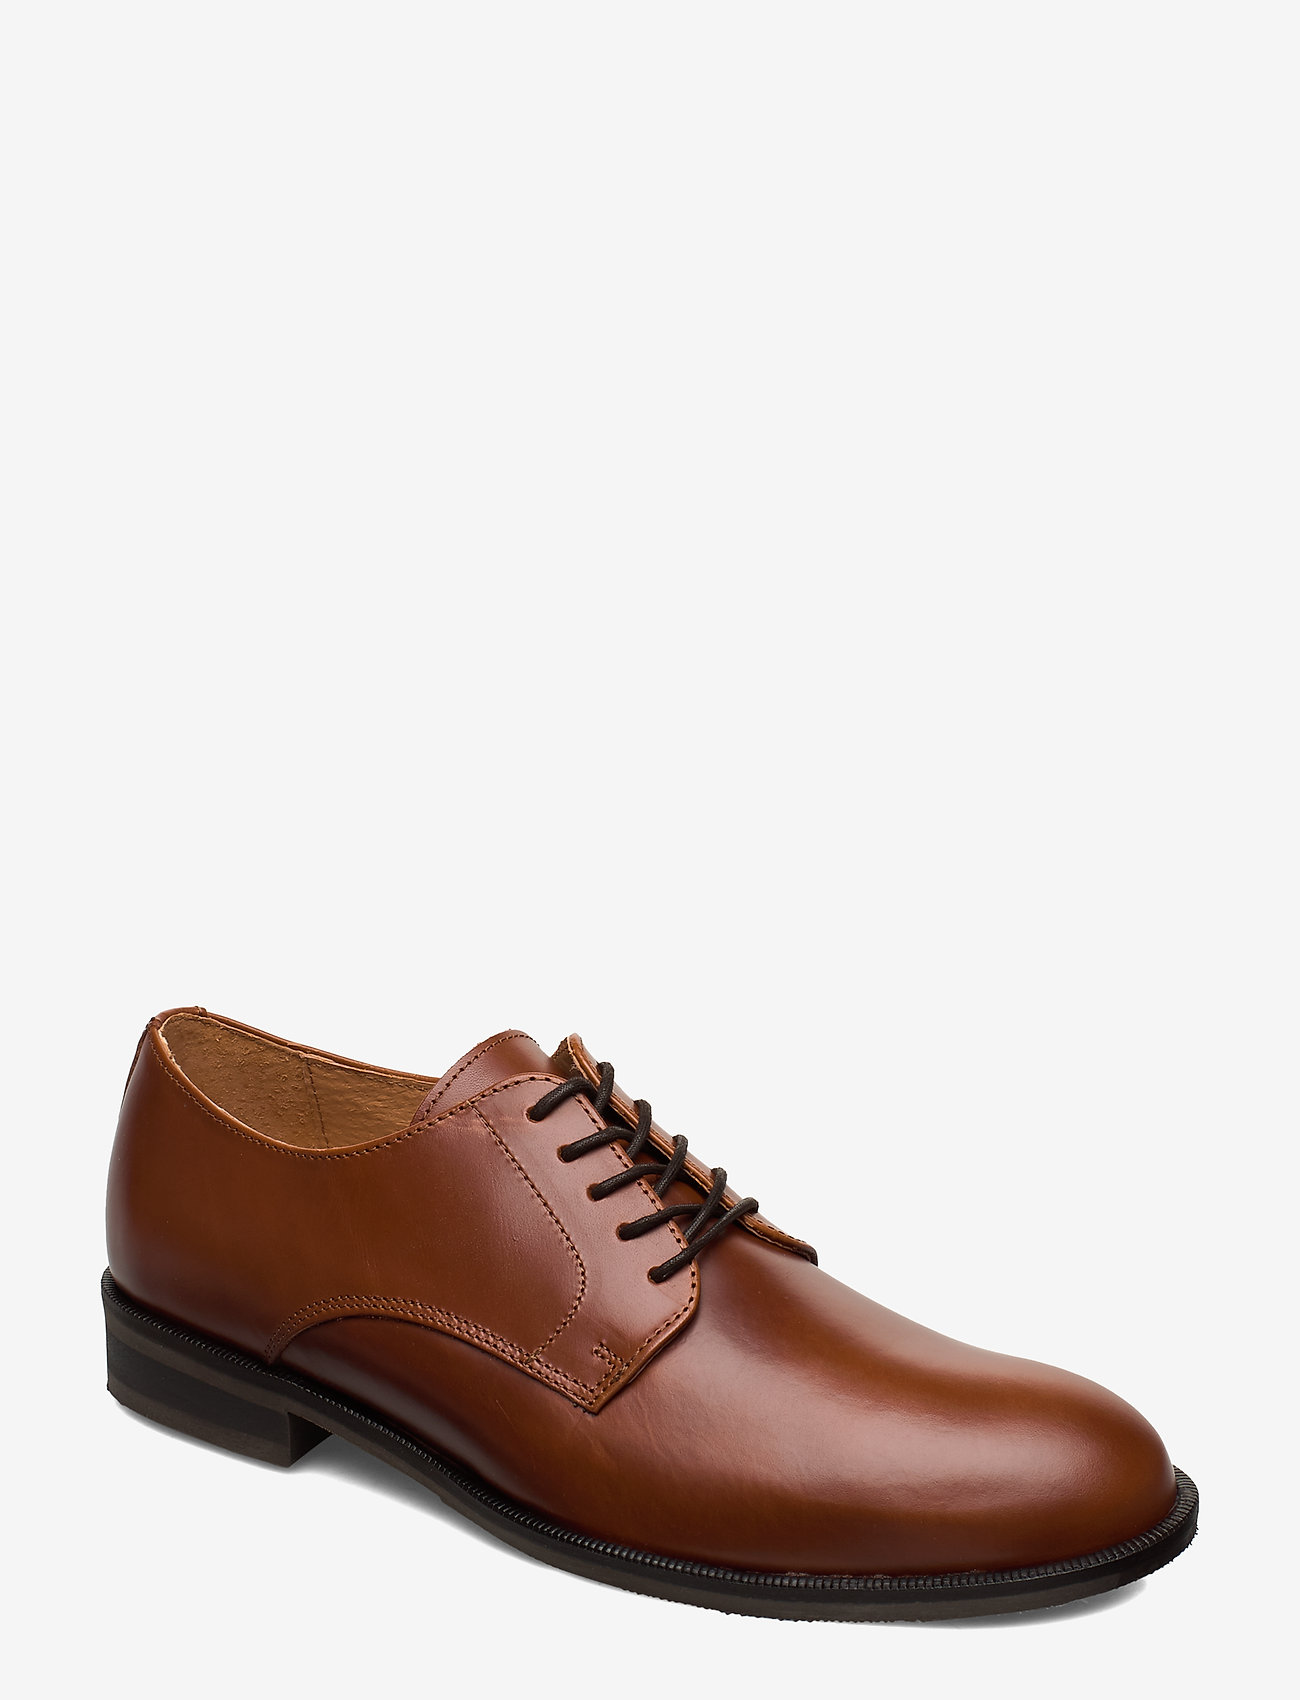 Selected Homme - SLHLOUIS LEATHER DERBY SHOE B NOOS - snøresko - cognac - 0